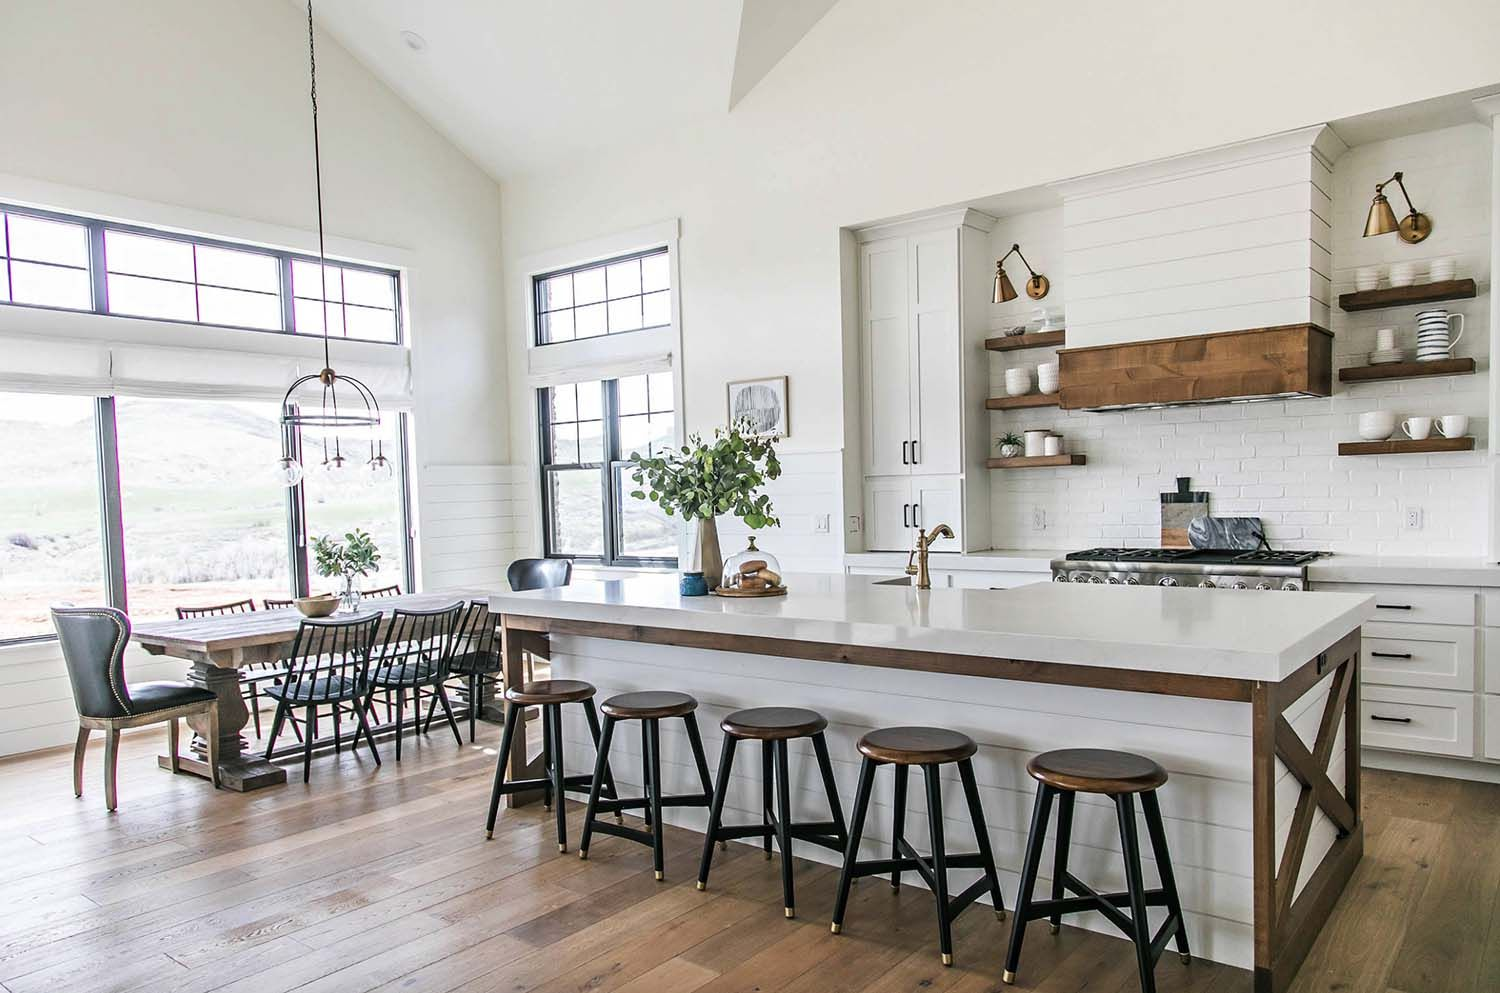 Modern farmhouse style in Utah features stylish living spaces | Casas